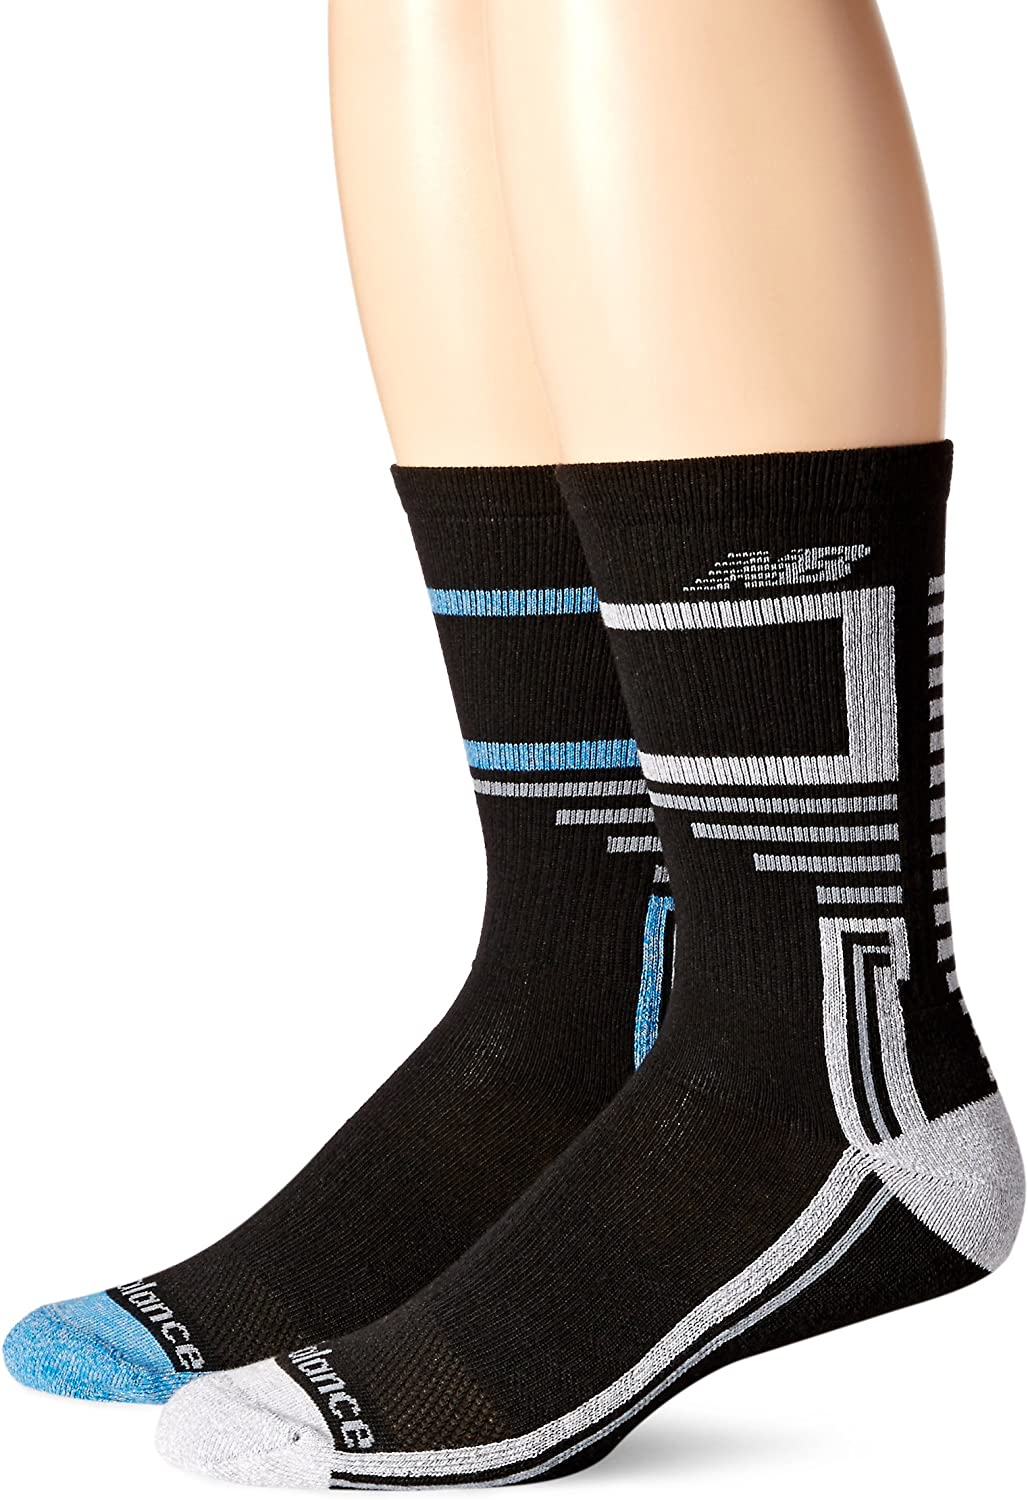 6 Pair New Balance Performance Training Crew Socks